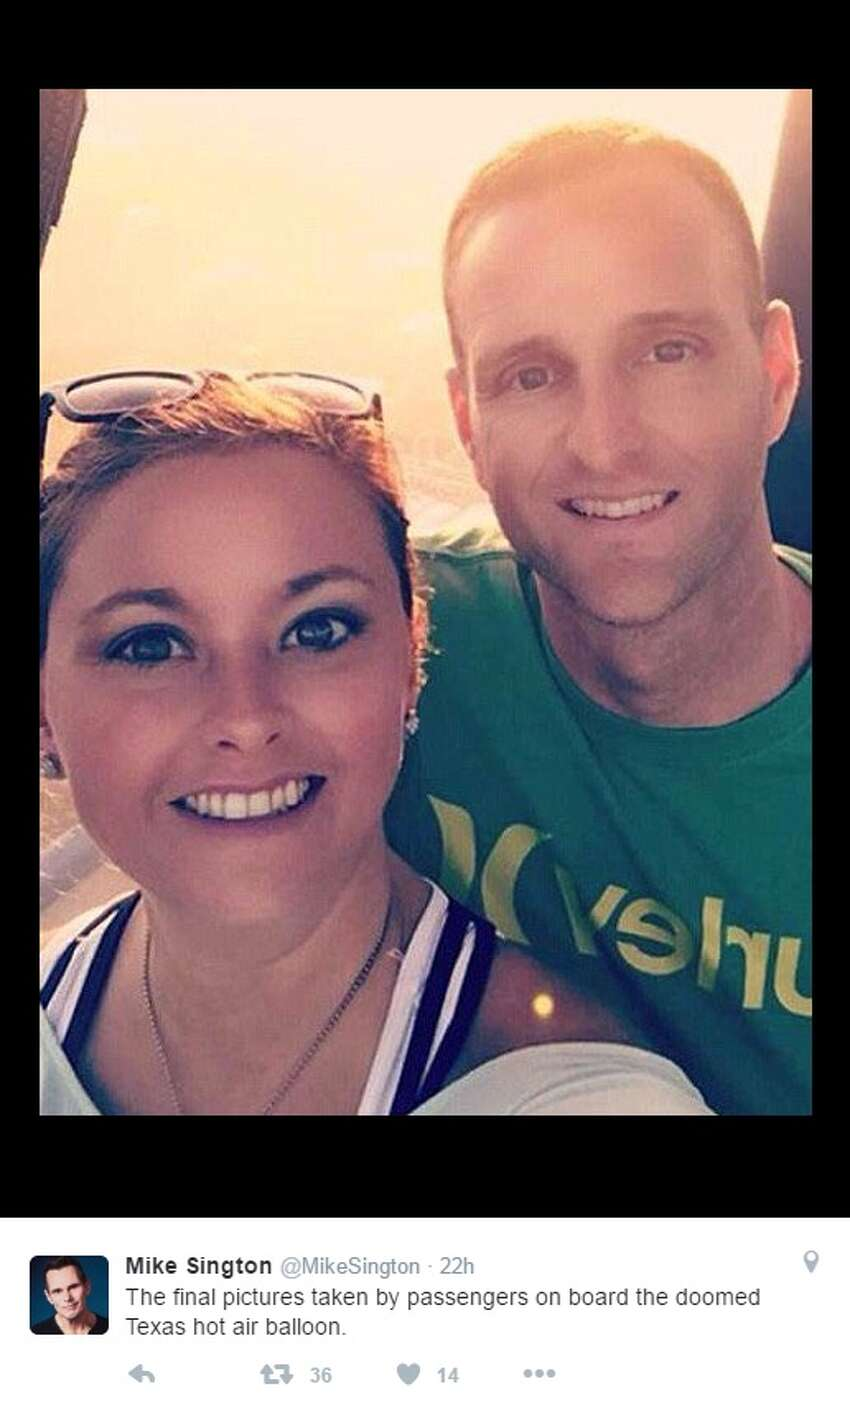 Click ahead to learn more about the victims of the fatal crash July 30, 2016. Sunday, left, and Matt Rowan, right, were newlyweds who were killed July 30, 2016 in a hot air balloon crash in Lockhart. They shared this image with their family moments before the crash. @MikeSington: